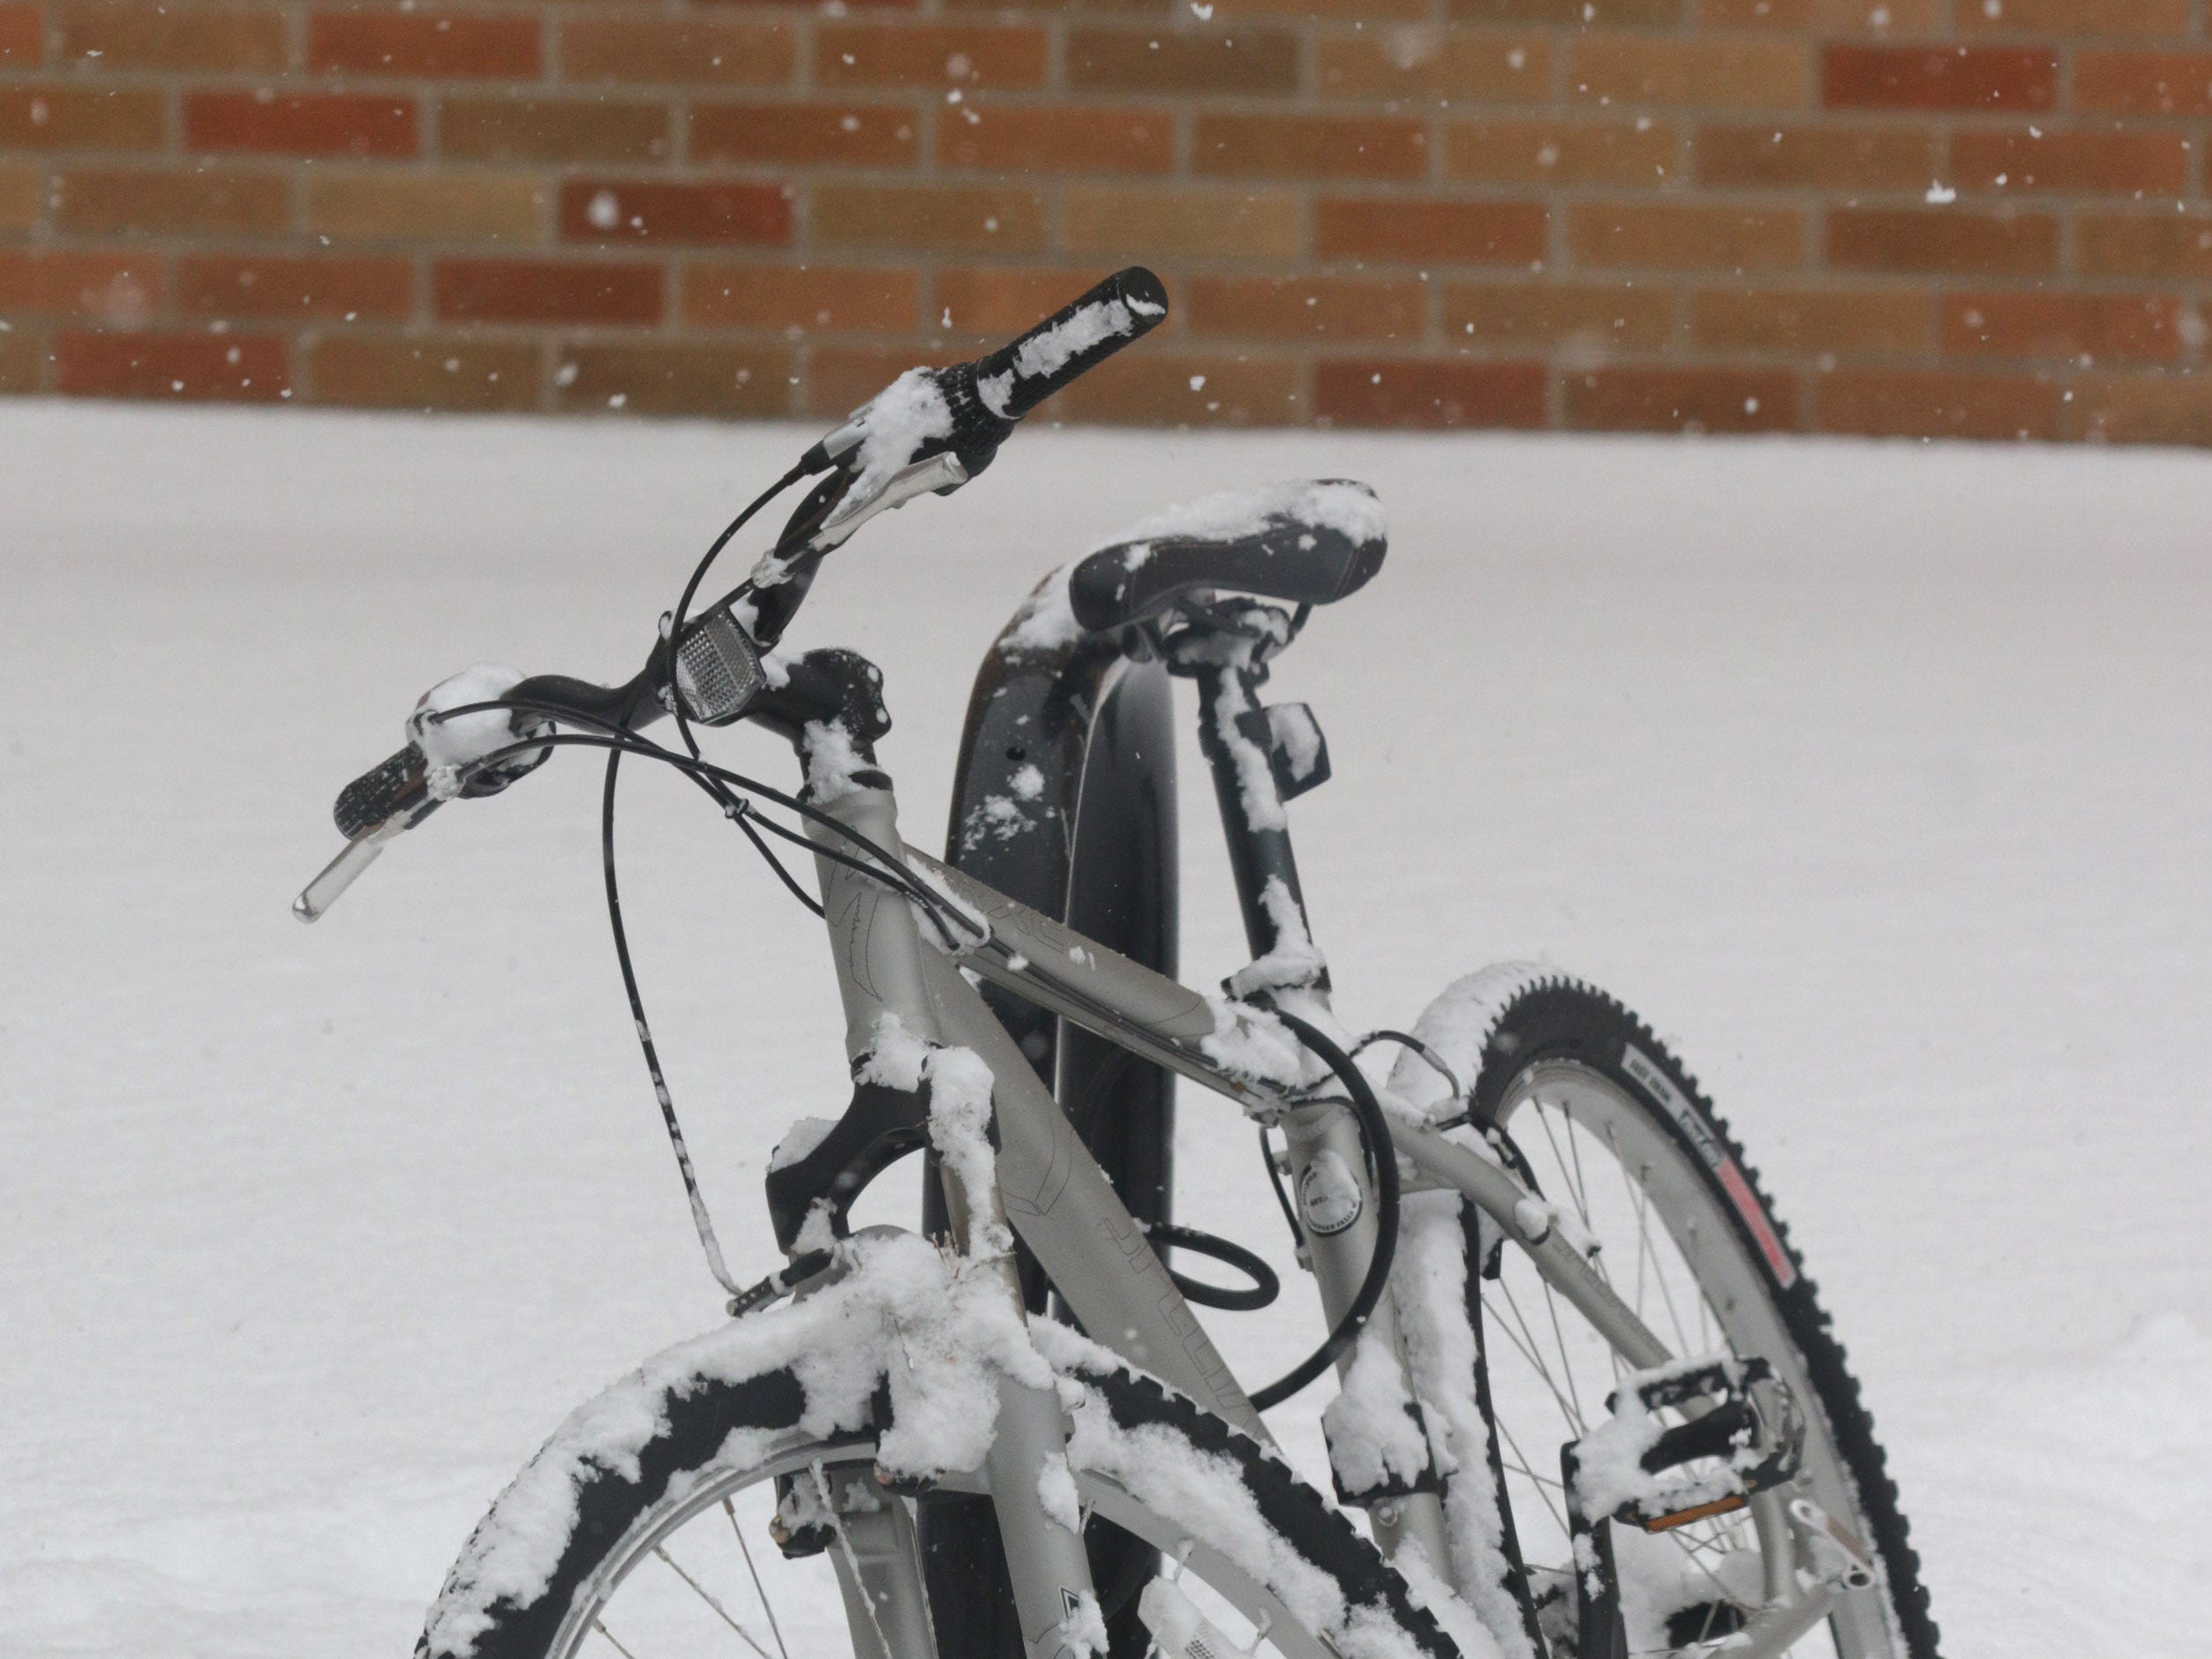 A bicycle, covered in snow near Mead Library, Saturday, January 19, 2019, in Sheboygan, Wis.